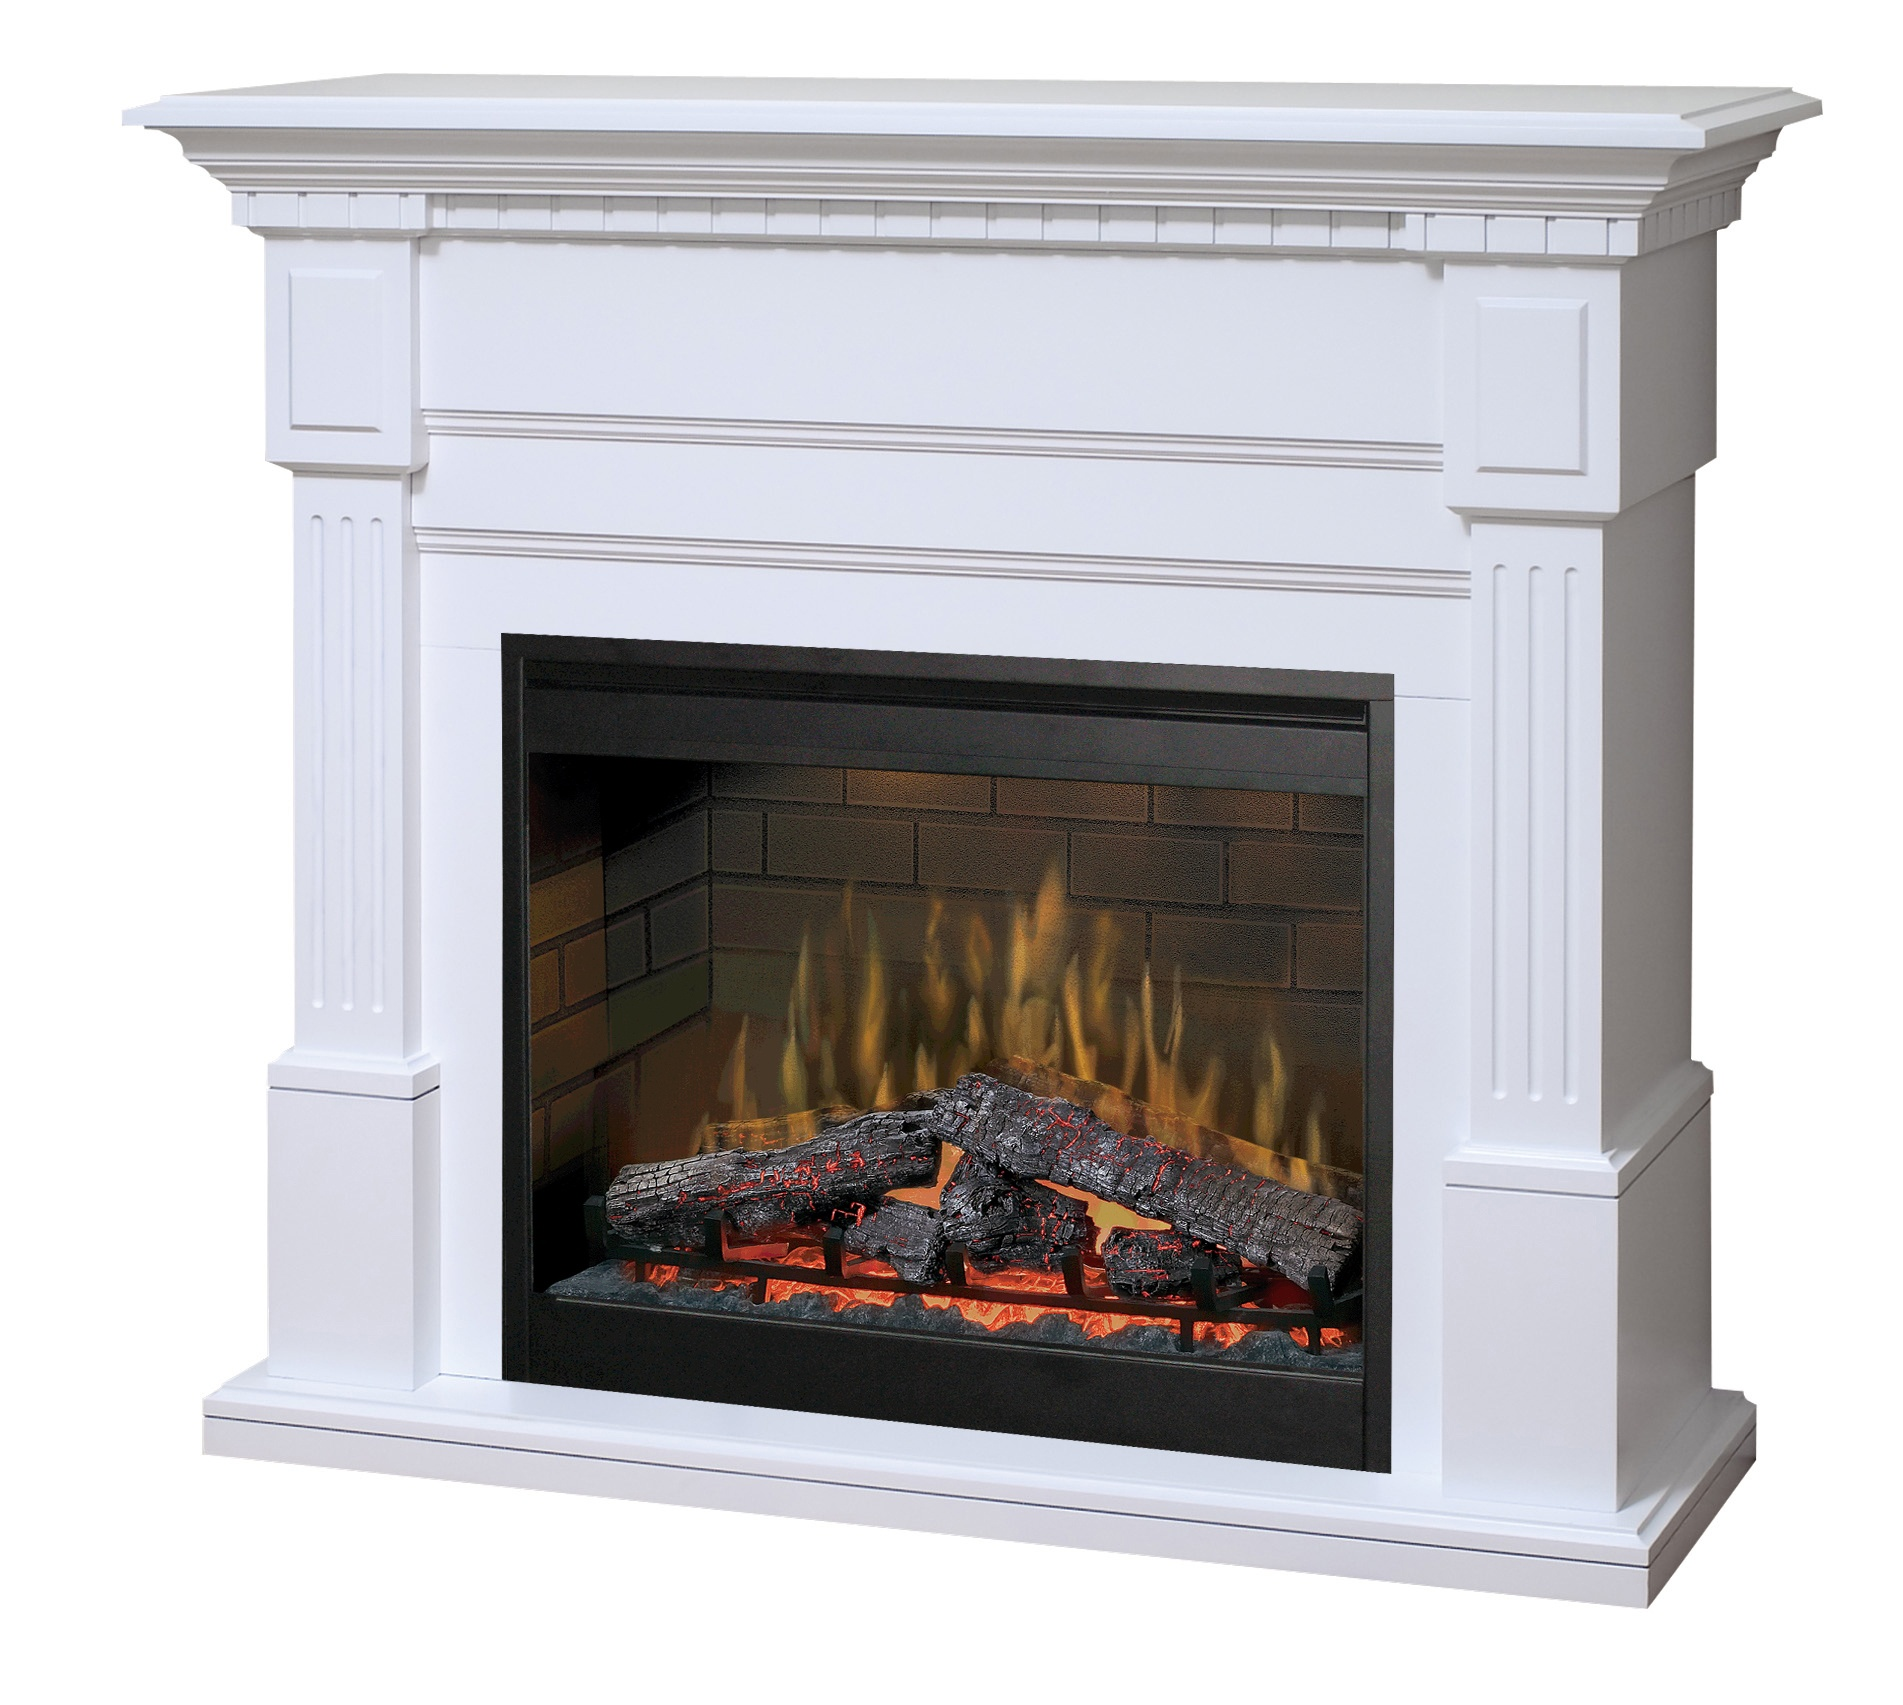 Electric Fireplaces Dimplex Dimplex Essex Gds30l3 1086w 30 Quot Electric Fireplace Wall